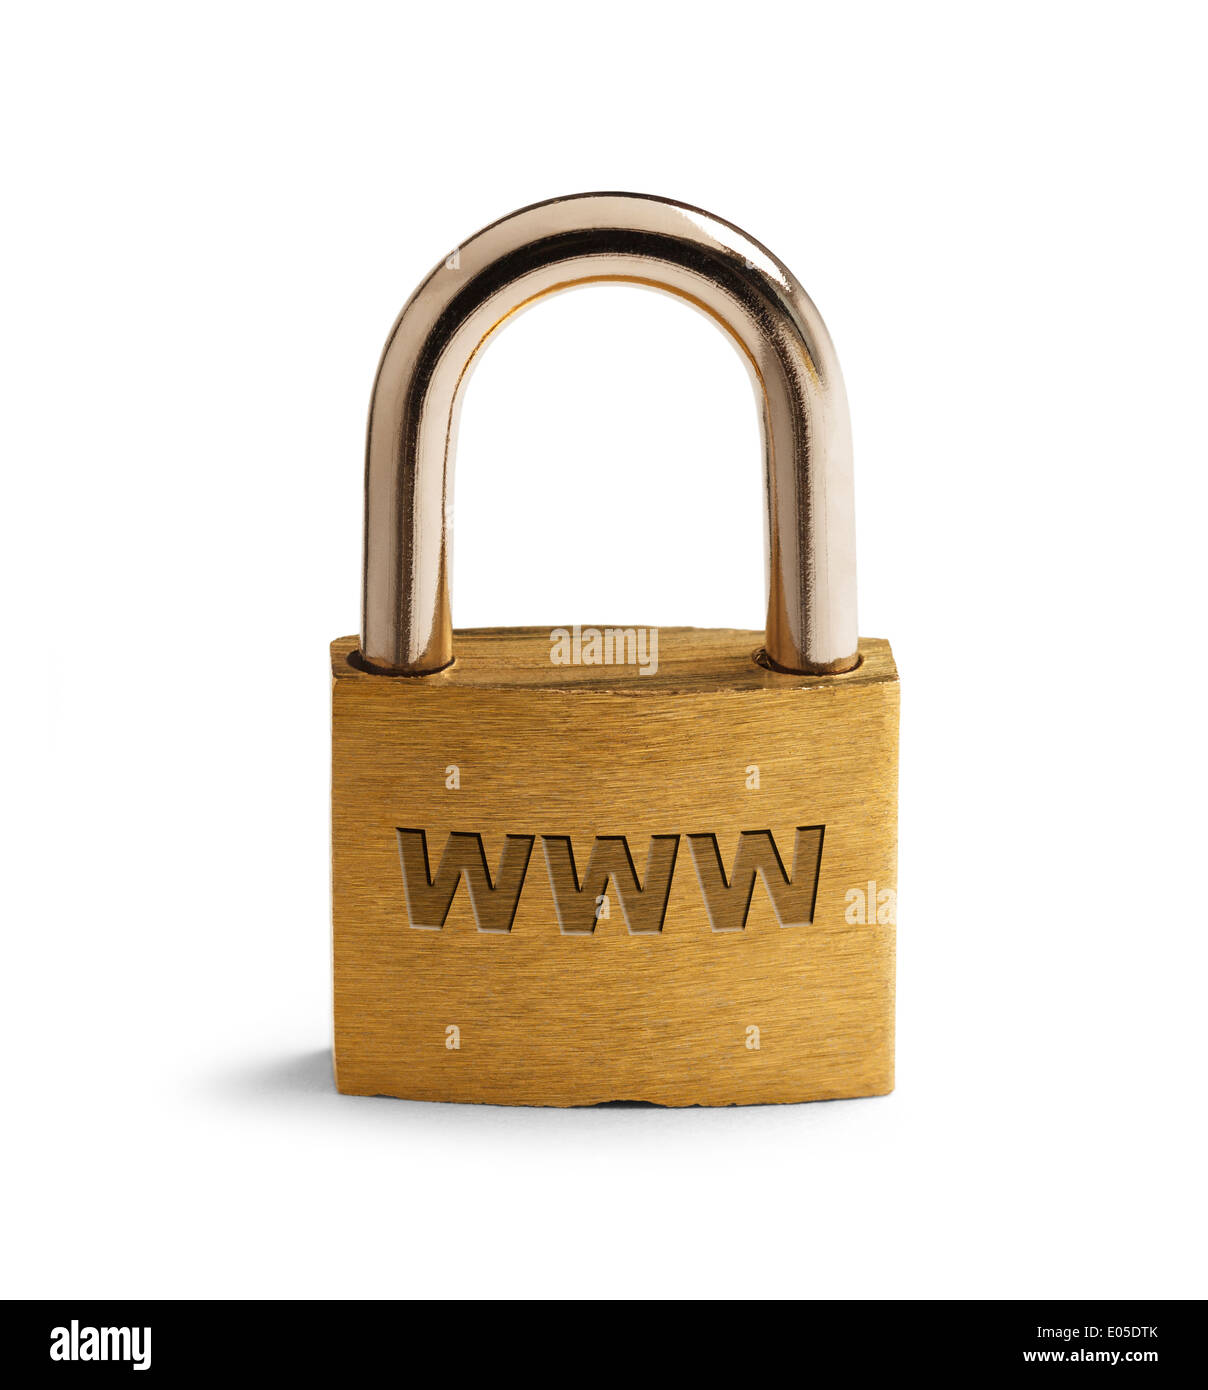 Brass Padlock with WWW on surface Isolated on White Background. - Stock Image